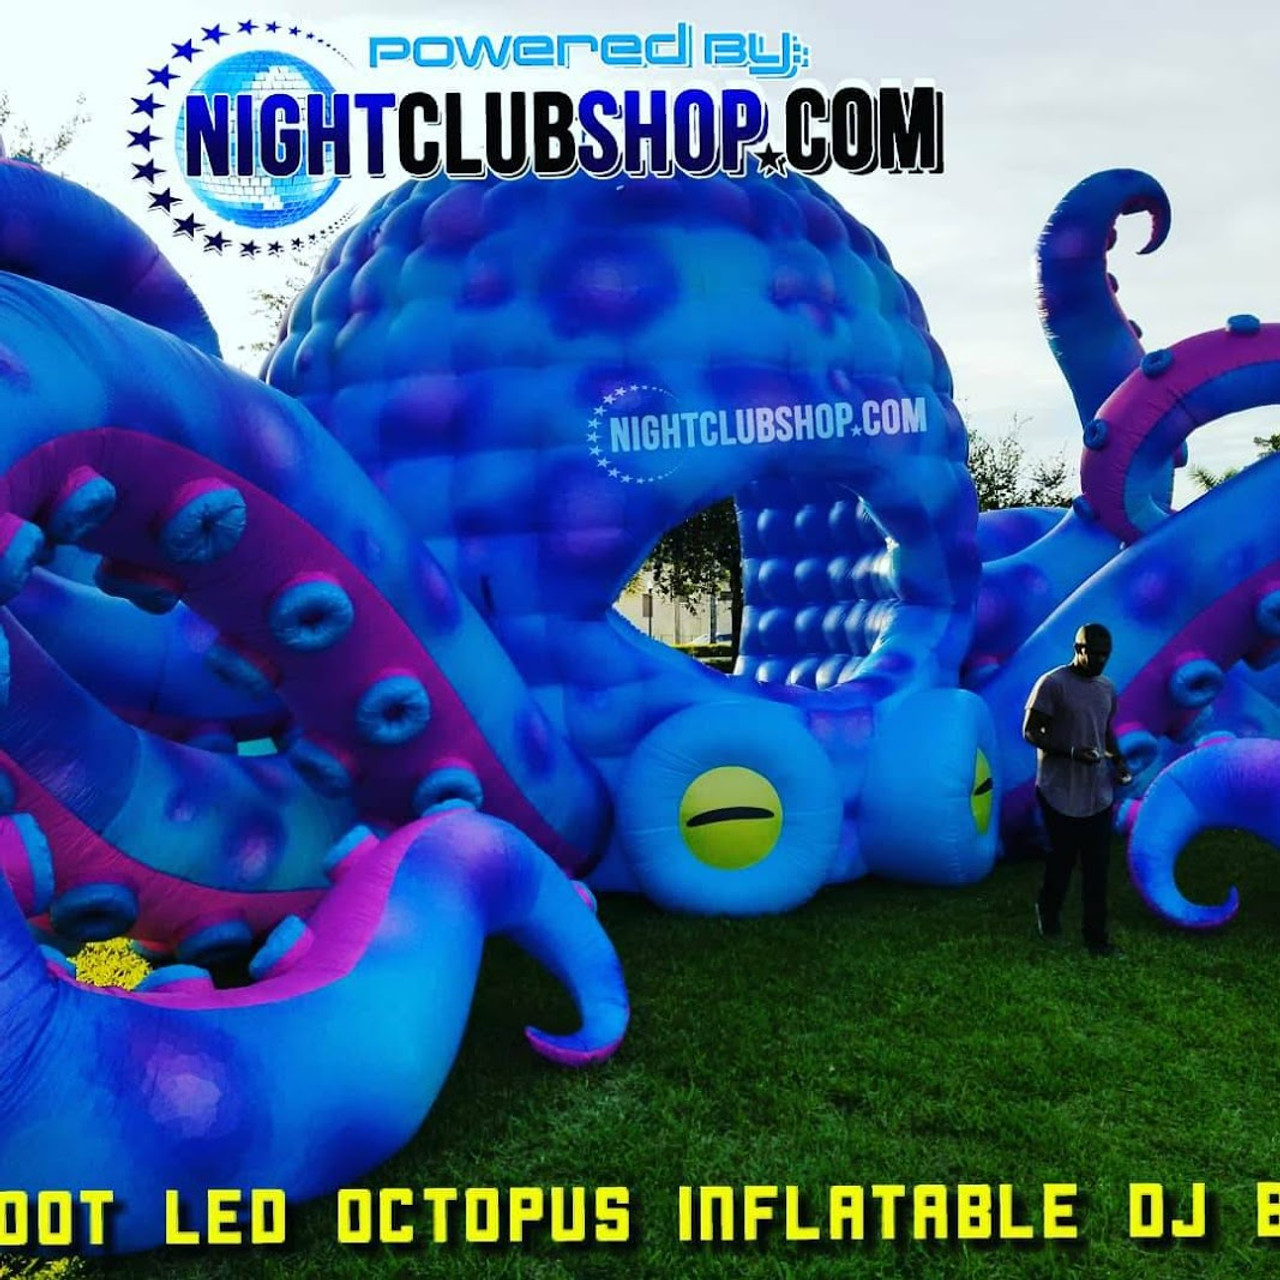 53',33' foot, cabin, festival, djbooth,LED, inflatable,giant,octopus,blow up,stage , prop, dj,booth, PartyPus